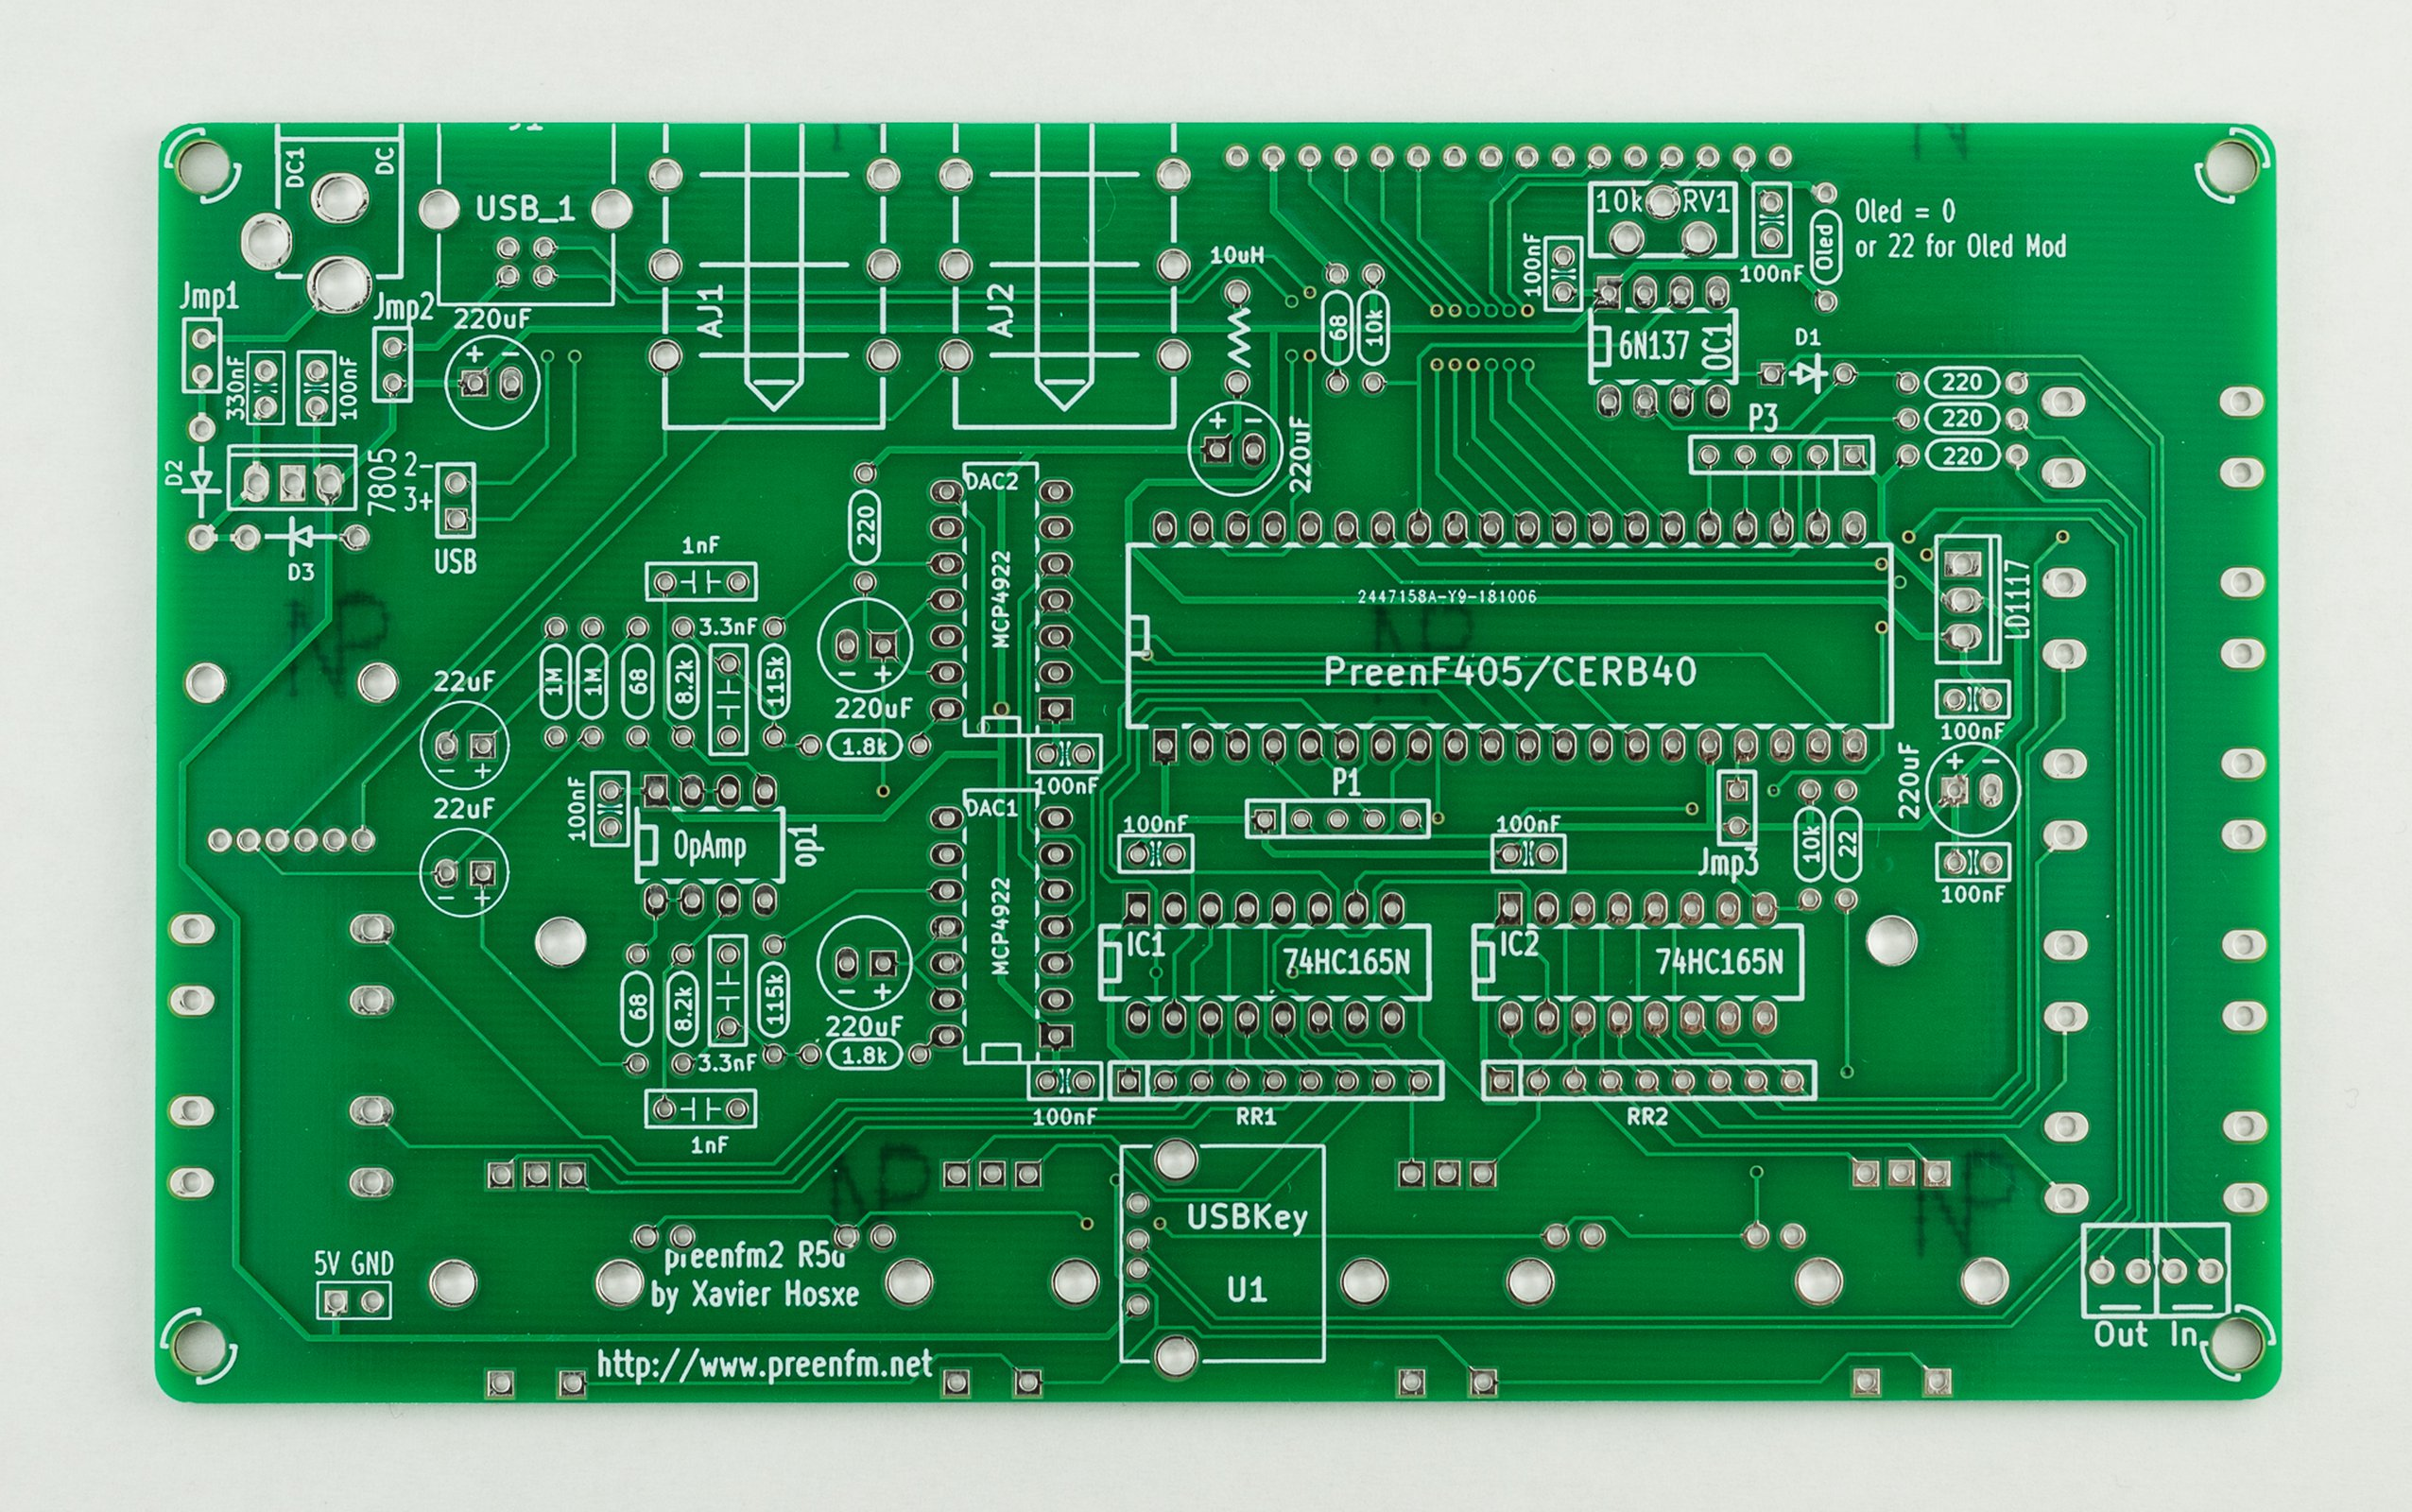 Preenfm2 Fm Synthesizer Pcb F405 Mcu Board From Synthdiy On Tindie Circuit 1